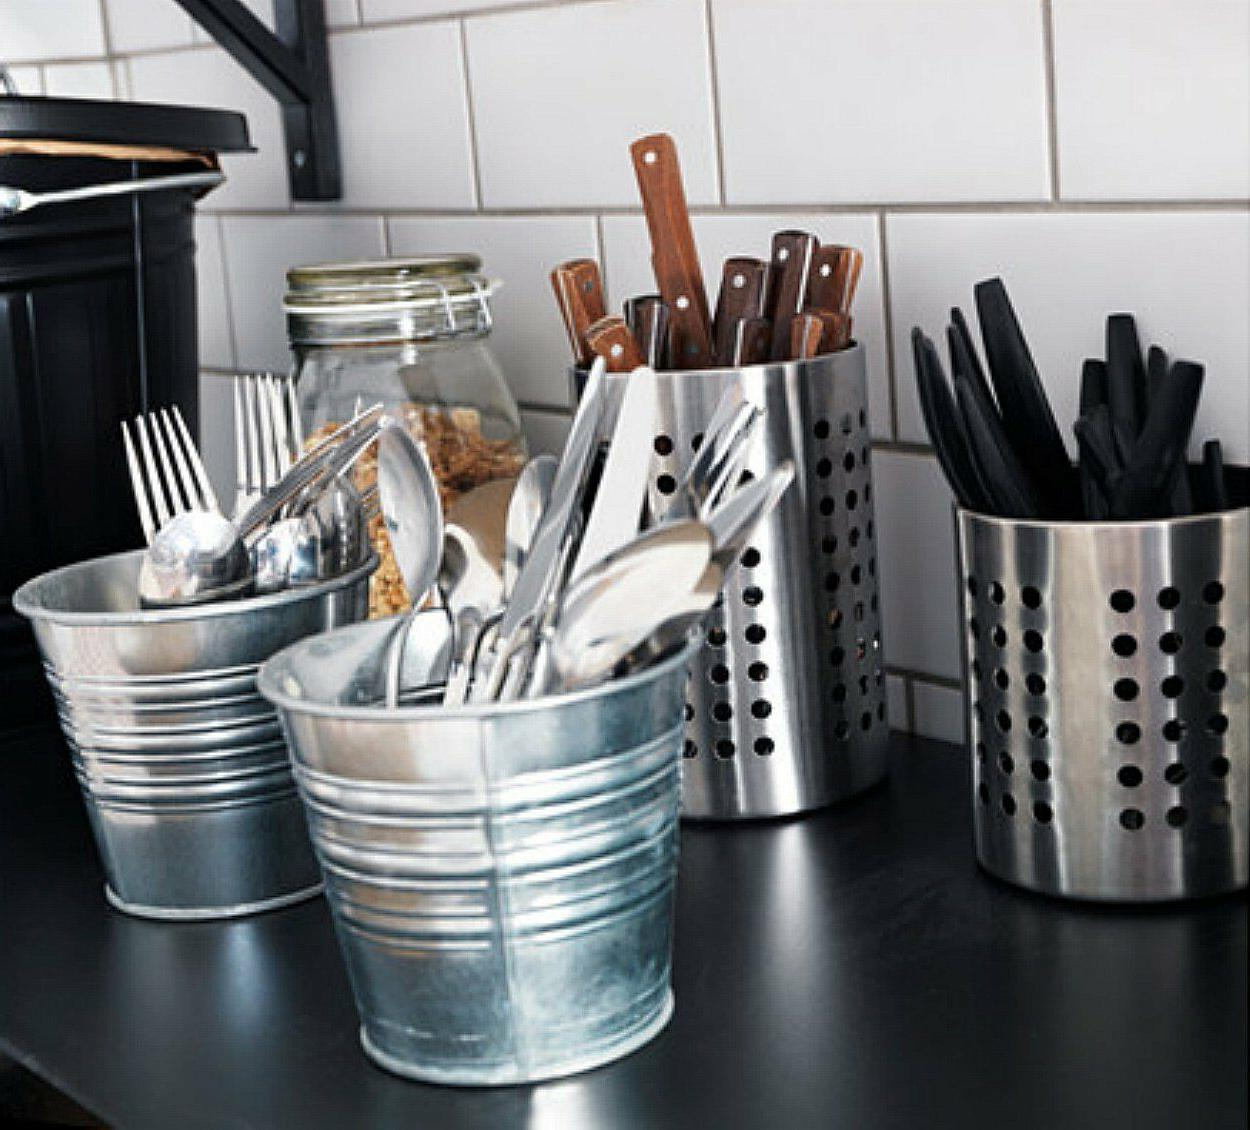 IKEA Utensils Silverware Storage Holder